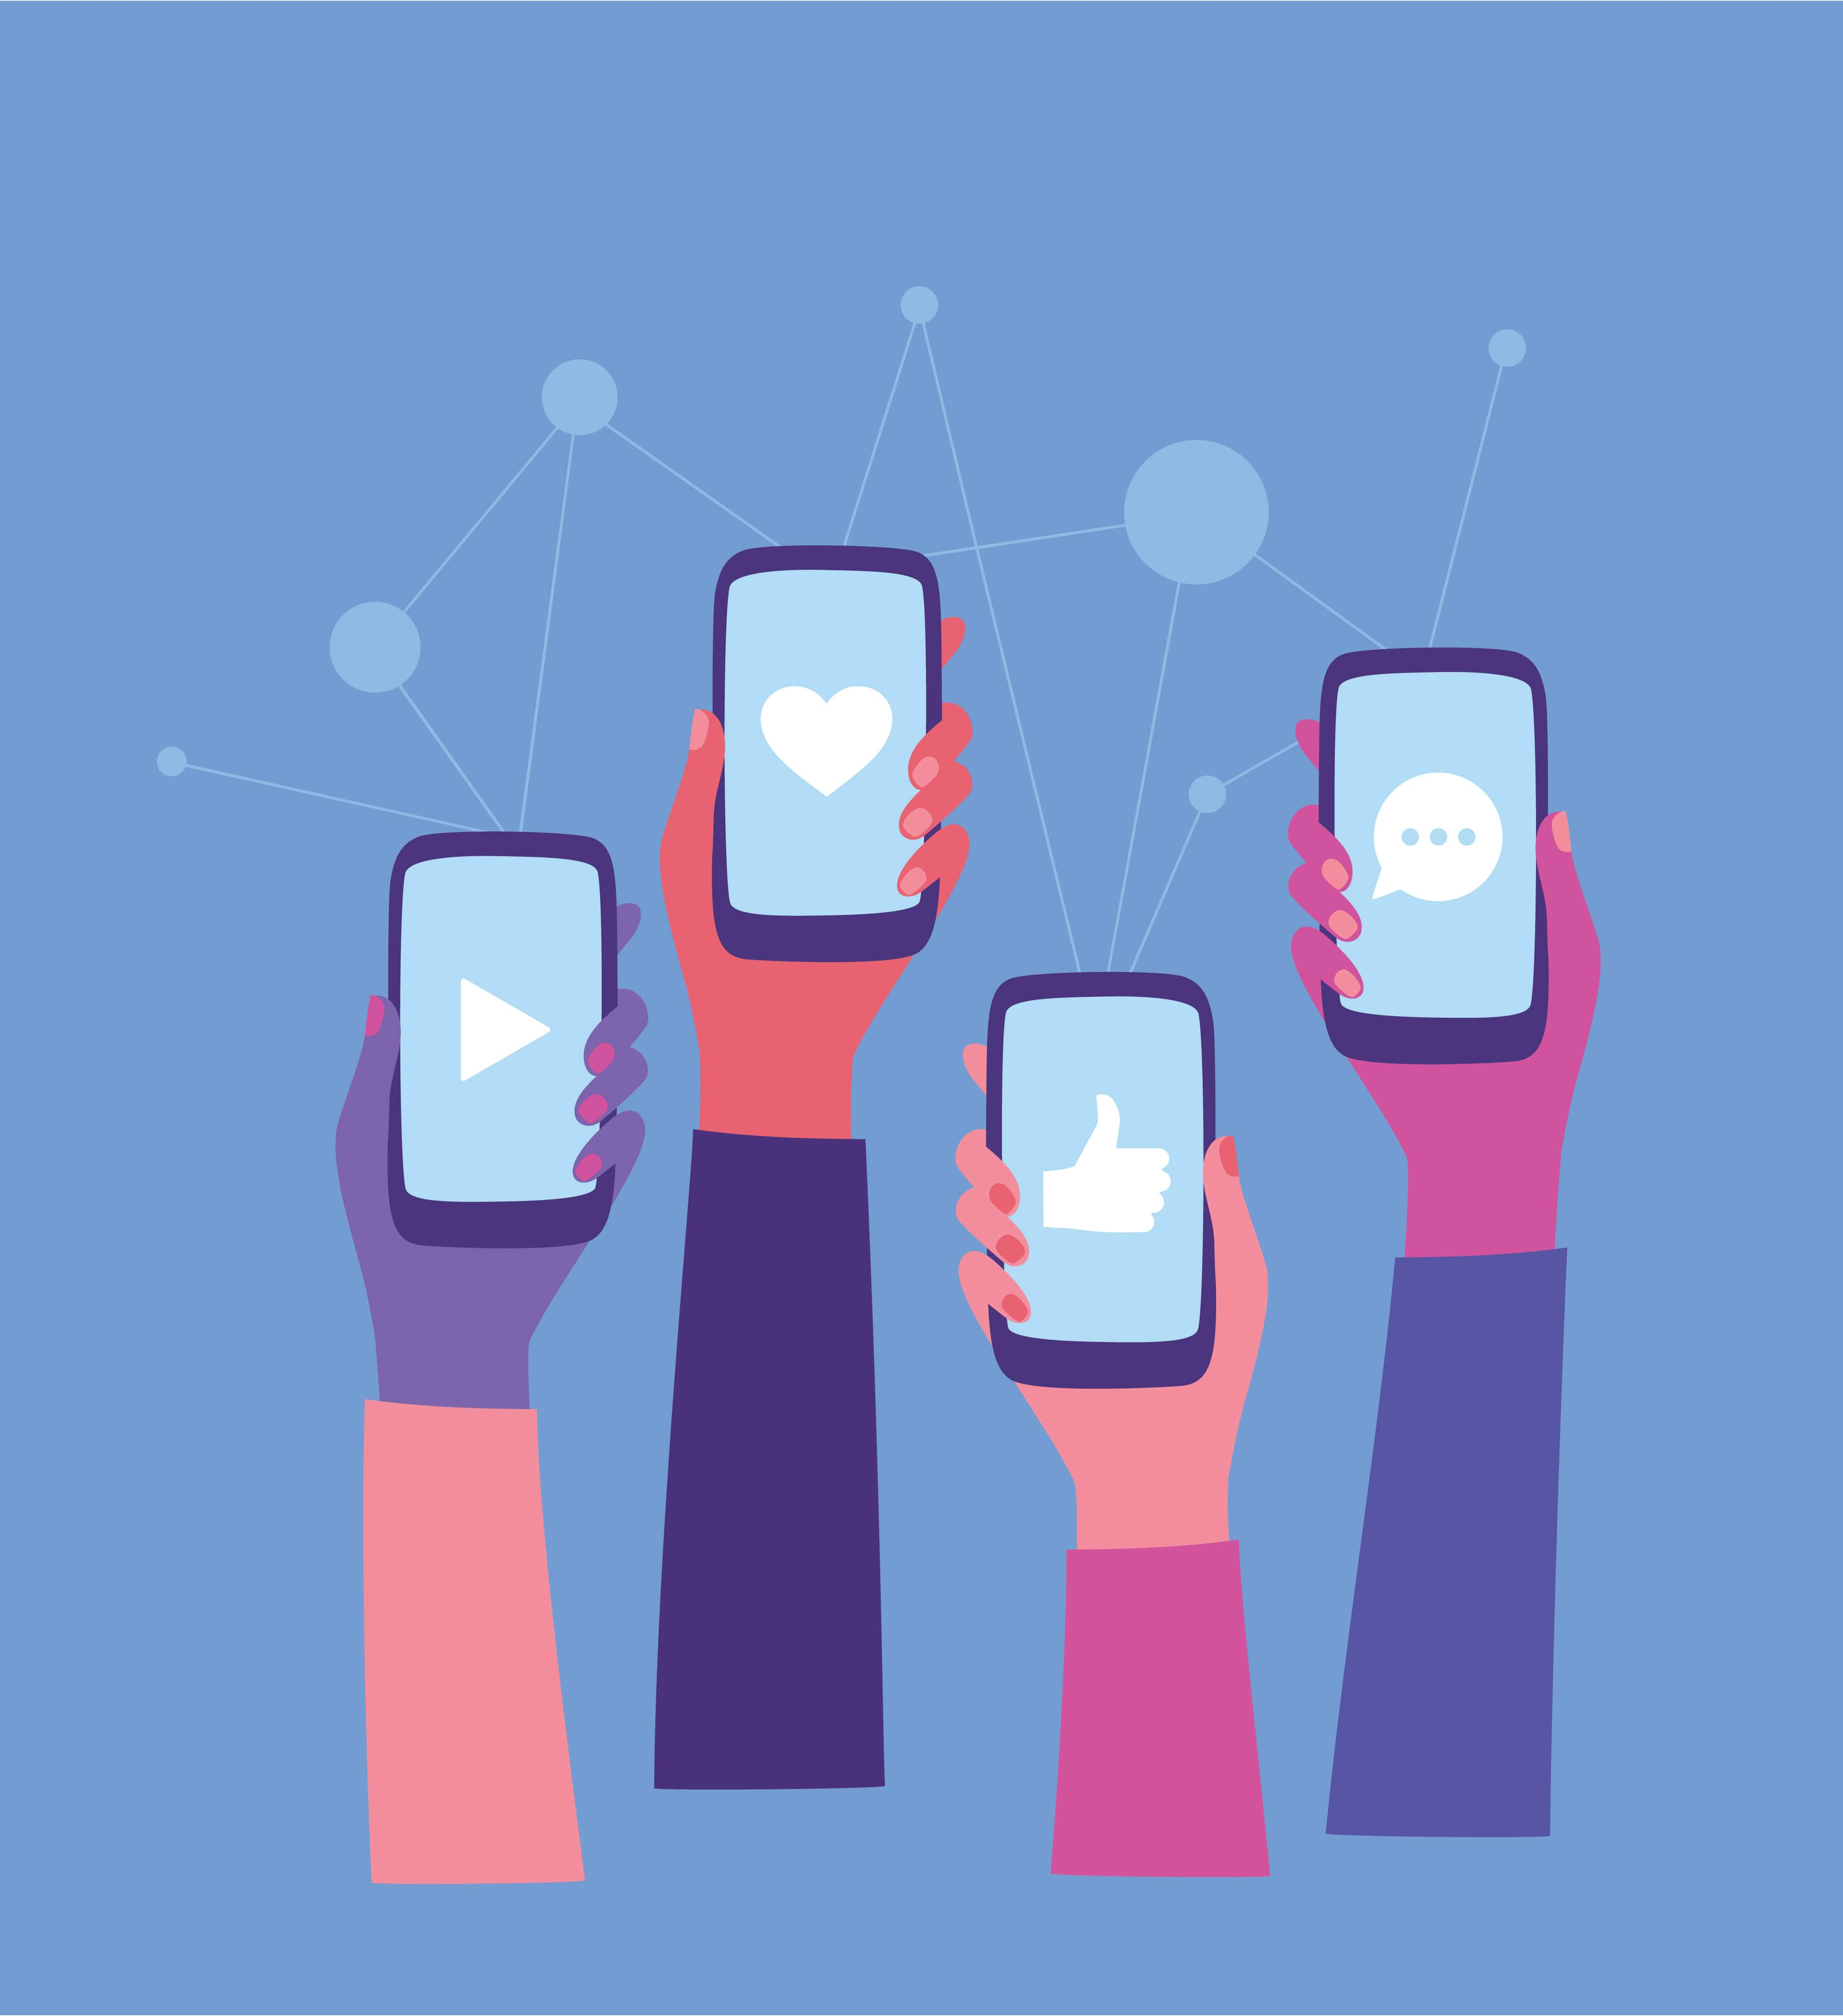 communicate-picks-2-once-upon-a-time-in-social-media